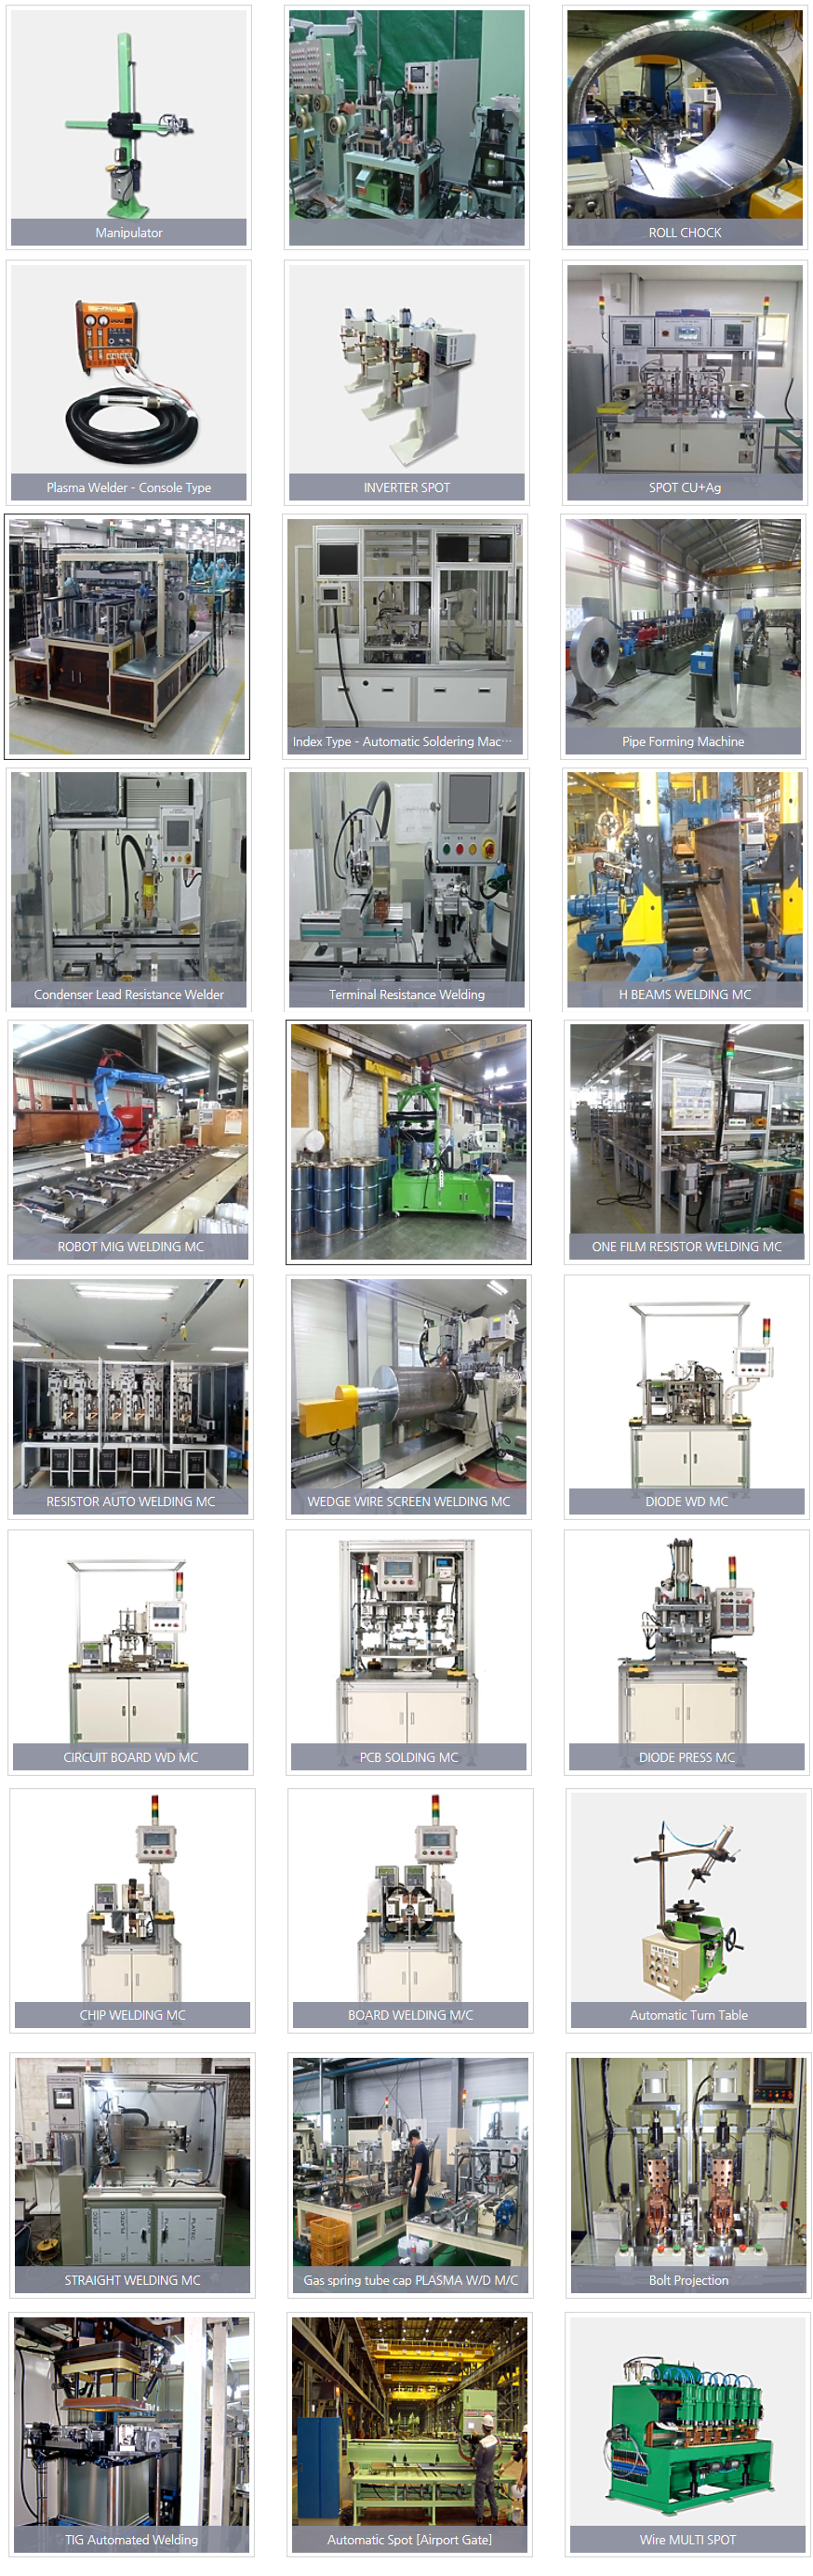 Gana Connect Welding Automation Facility